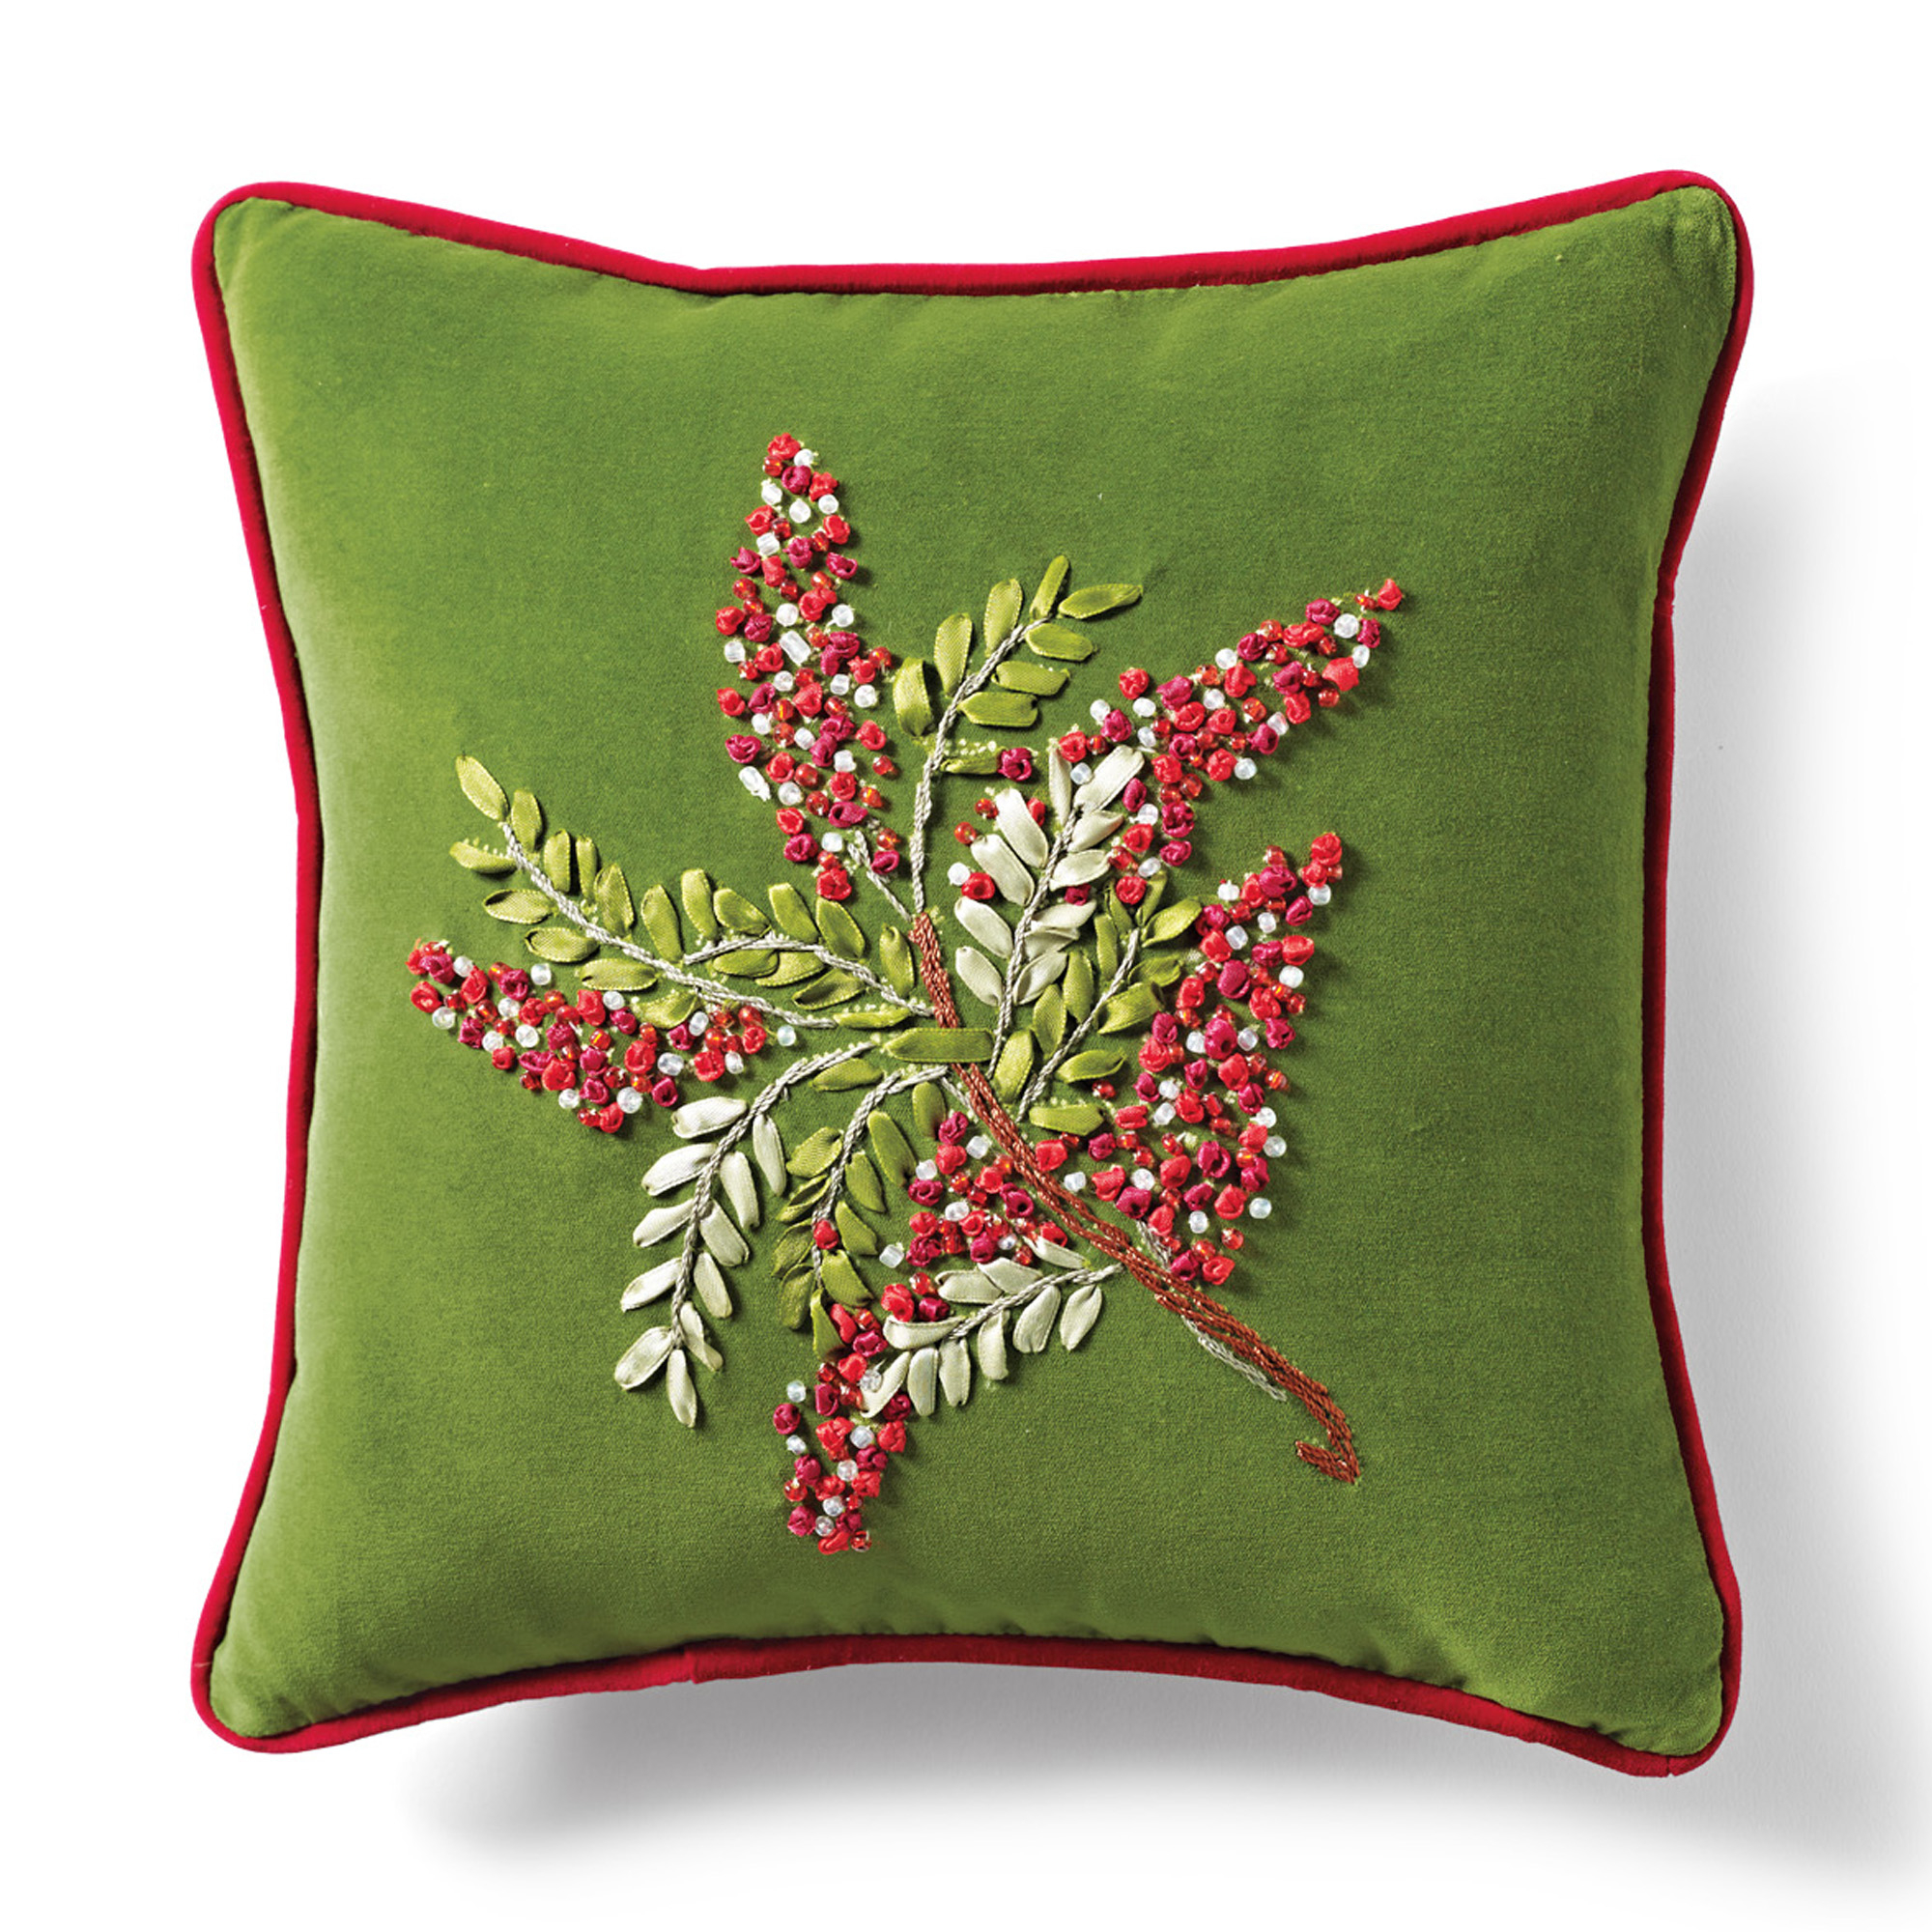 Red Berries Hand-Stitched Holiday Pillow